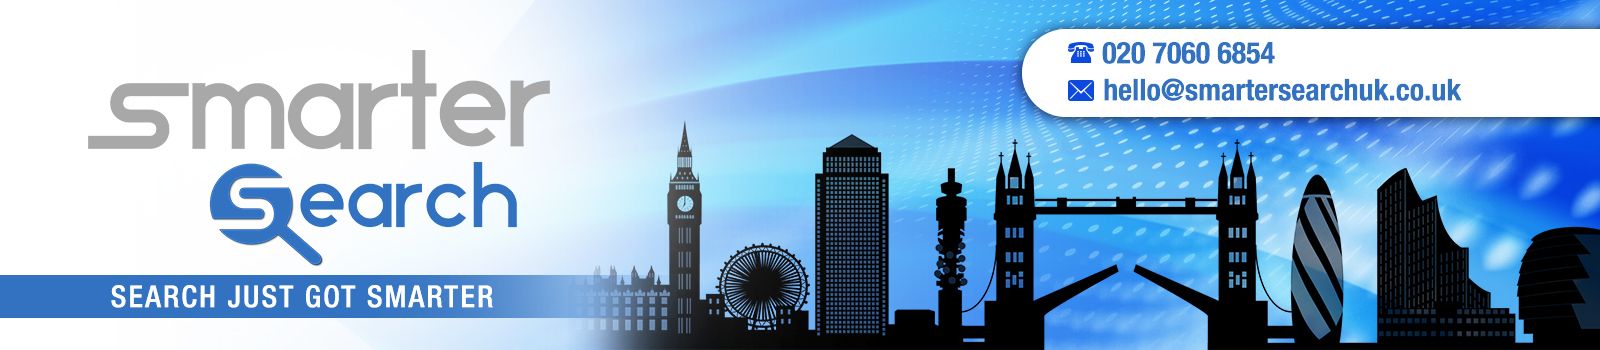 SEO in London by UK Professionals Smarter Search UK